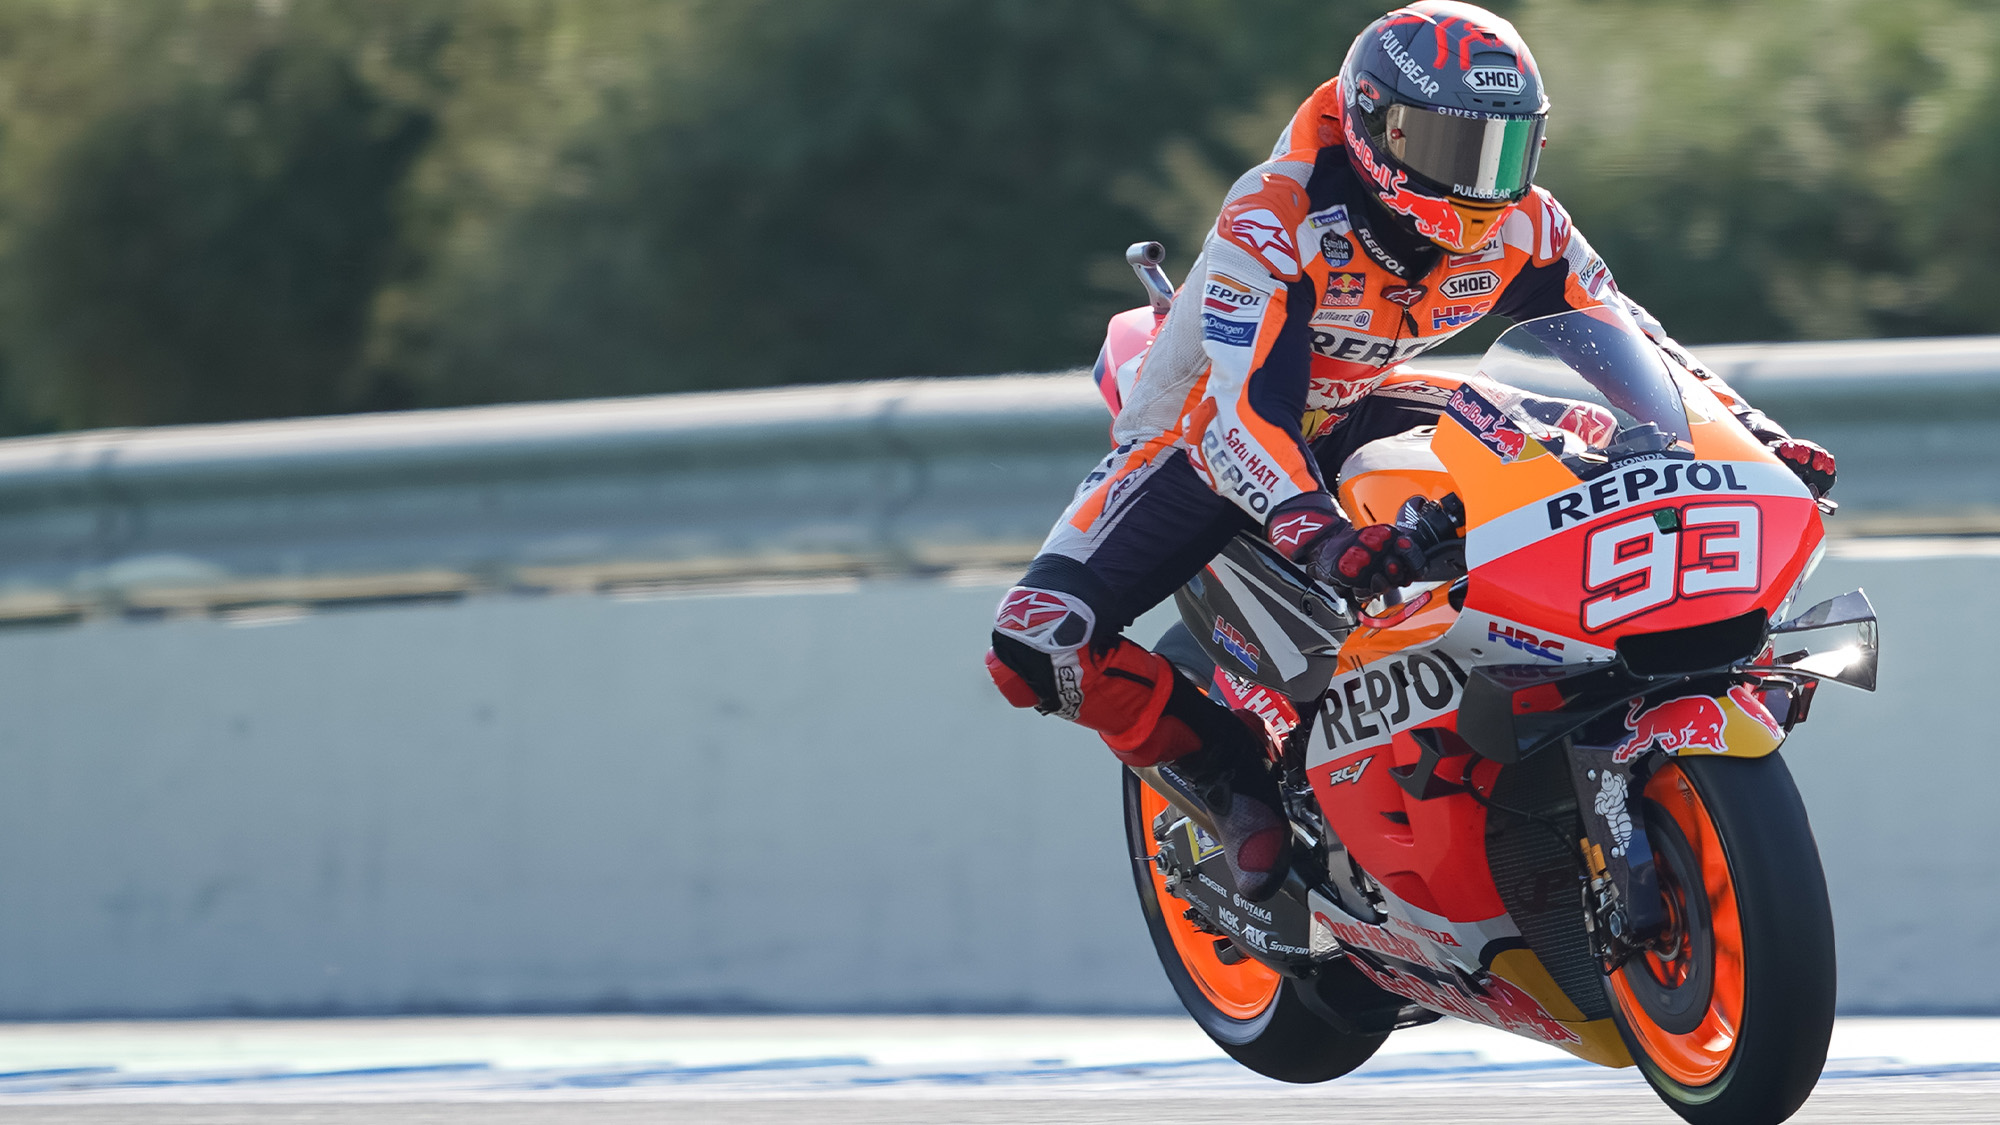 Marc Marquez at Jerez in 2020 rising with a broken arm